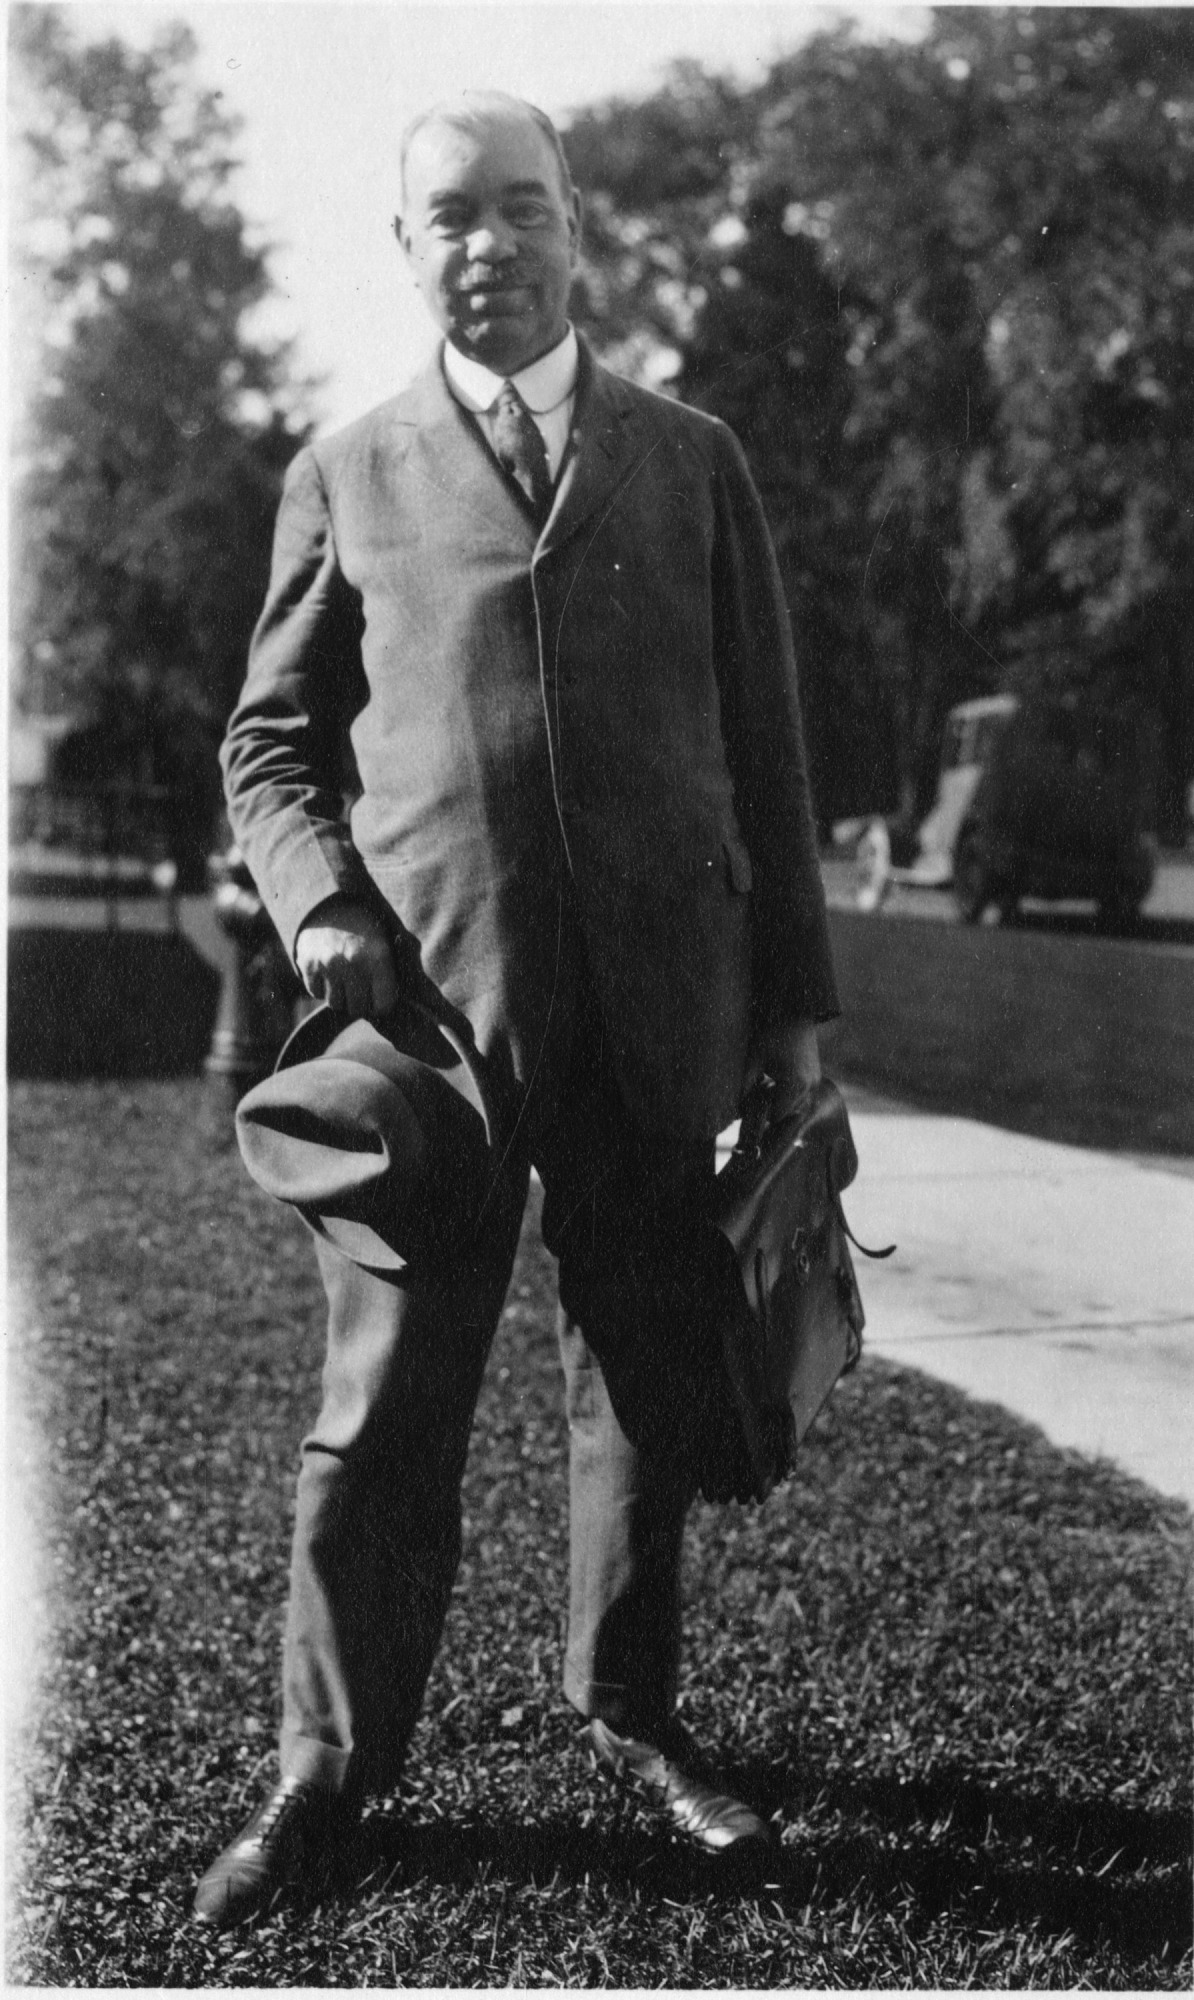 Edwin Emery Slosson (1865-1929), Smithsonian Institution Archives, SIA Acc. 90-105 [SIA2009-3464].